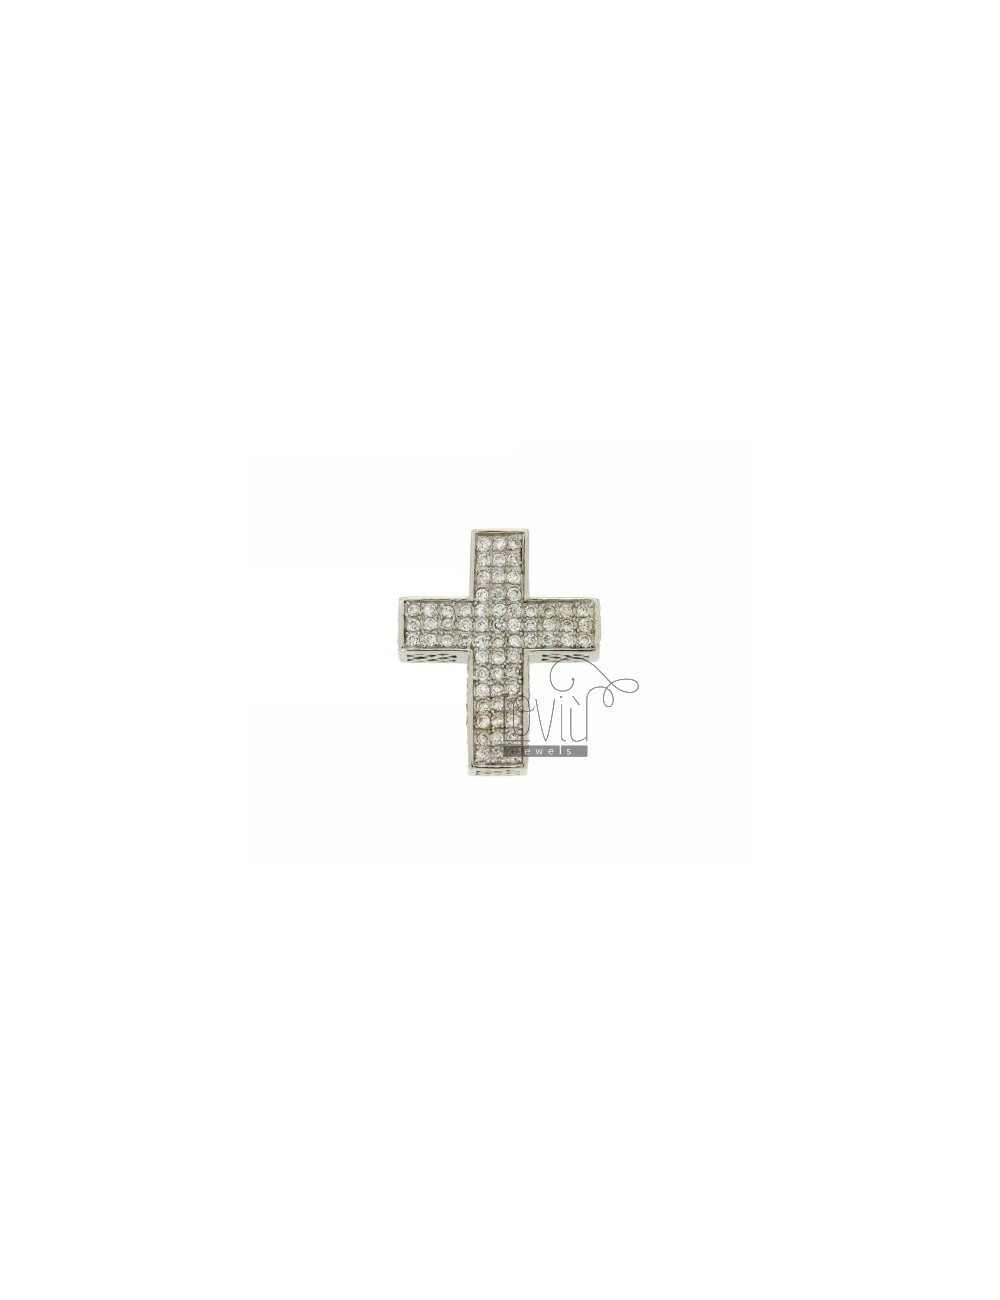 36x29 MM CROSS PENDANT IN AG TIT 925 ‰ WITH RHODIUM PAVE &39OF ZIRCONIA